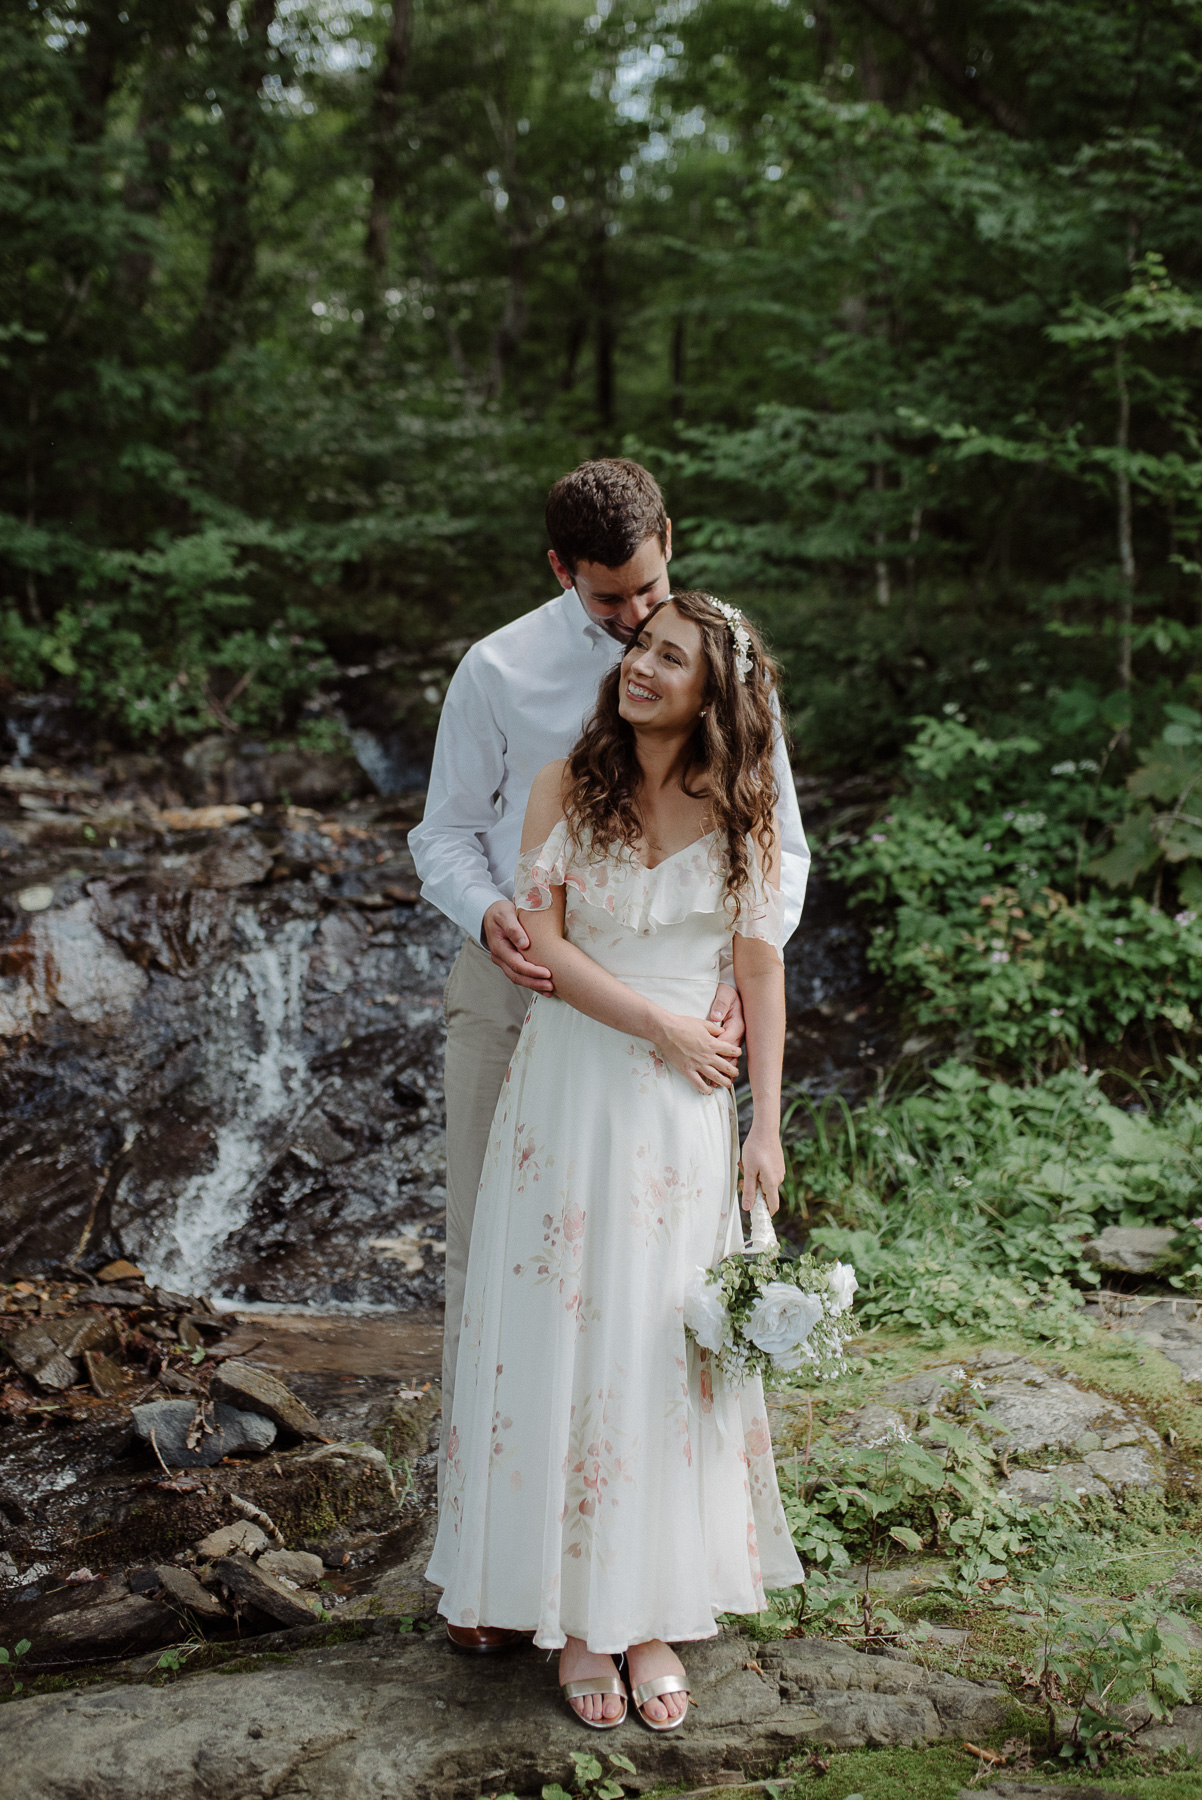 Enowen-Photography-Kelly-Blake-blue-ridge-elopement262.jpg